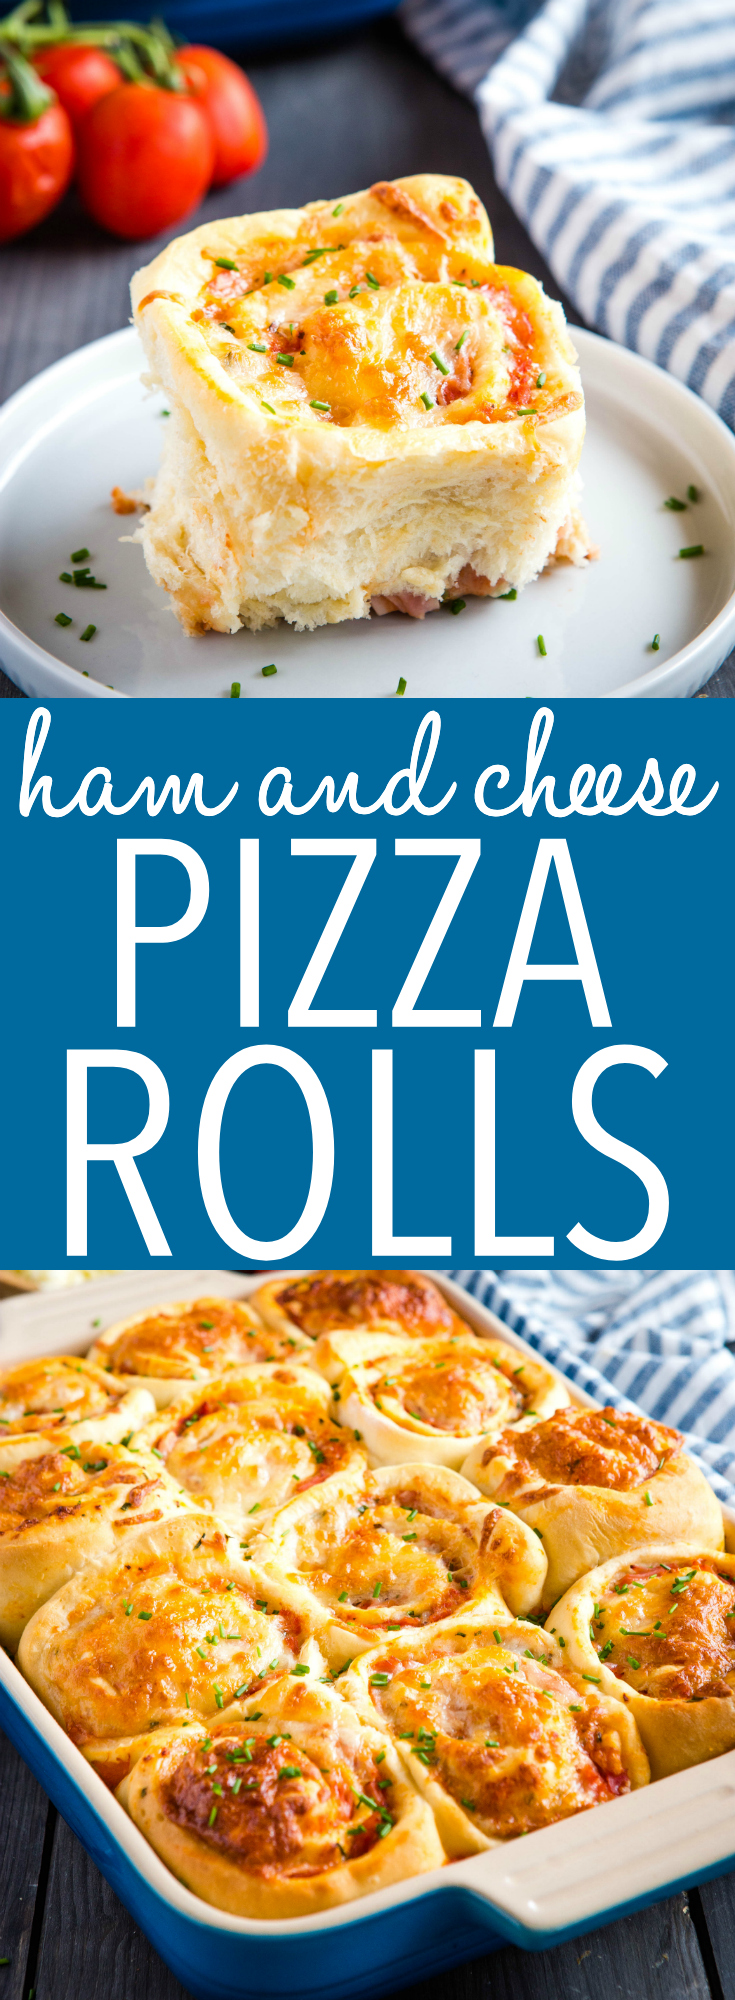 These Ham and Cheese Pizza Rolls are the perfect savoury treat with meat, cheese and veggies - great for a picnic, on-the-go lunches or an after-school snack! Recipe from thebusybaker.ca! #ham #cheese #pizza #cinnamonrolls #pizzarolls #snack #lunch #easy #kids #kidfriendly  via @busybakerblog